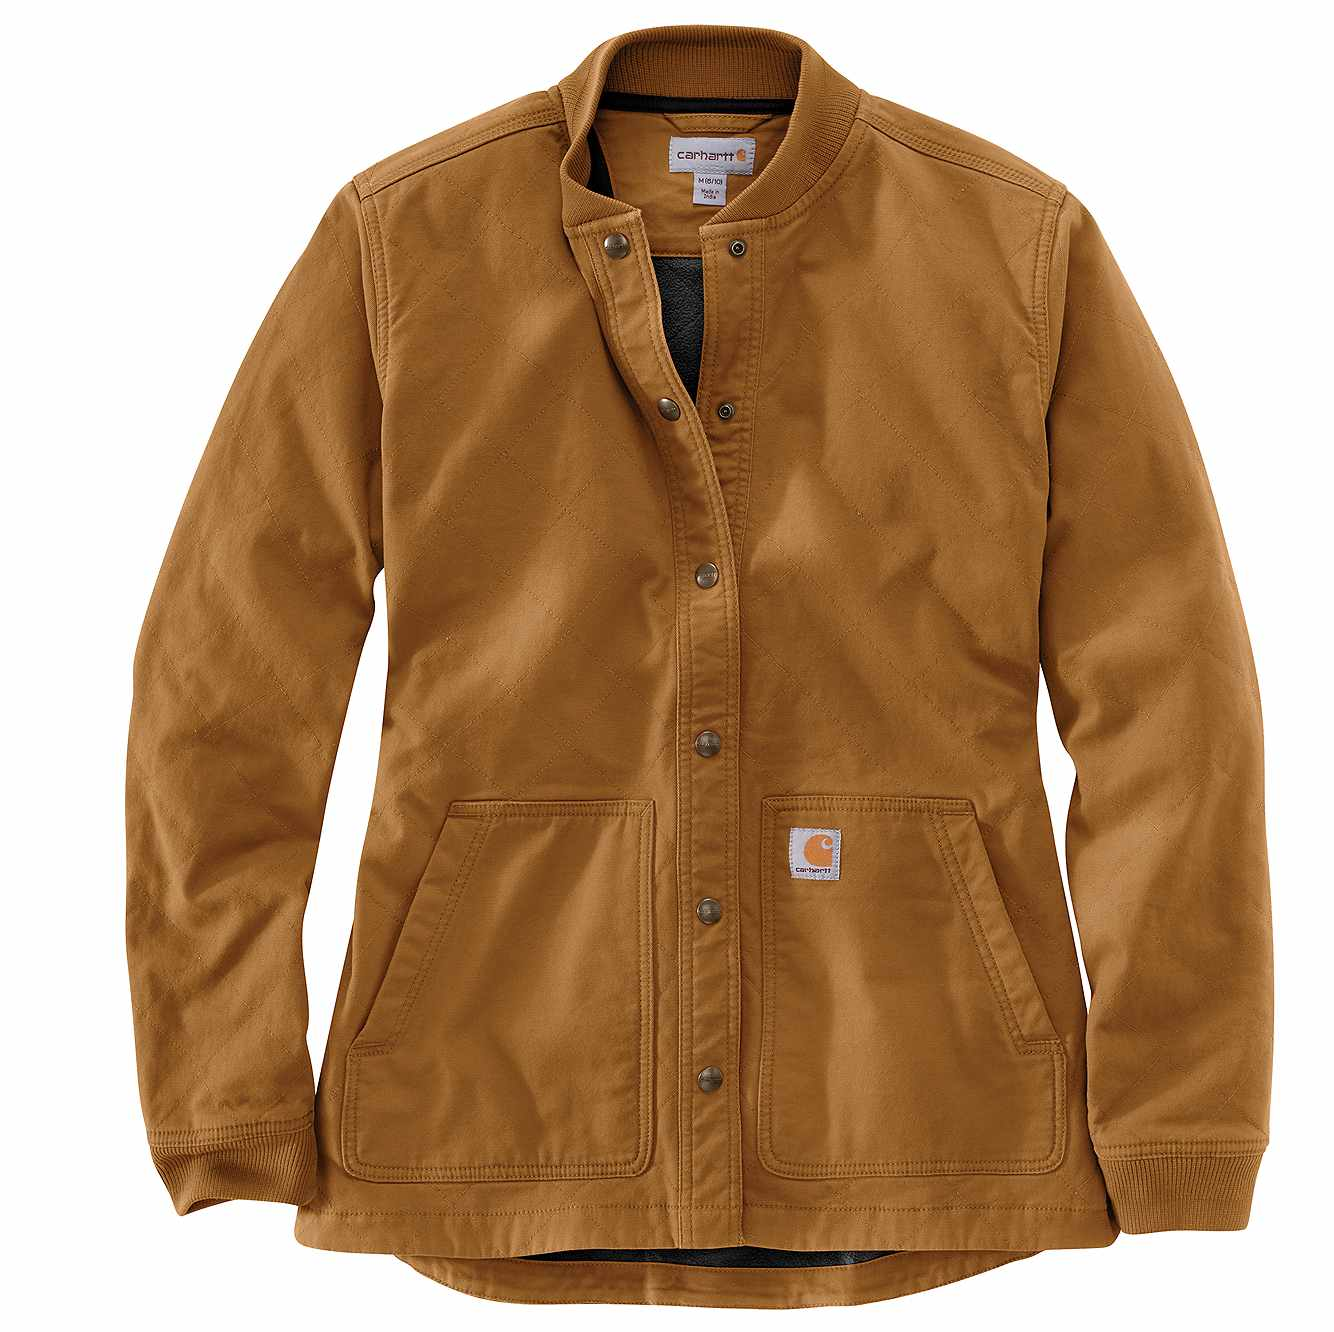 Picture of Carhartt® Relaxed Fit Canvas Snap Front Rib Collar Shirt Jac in Carhartt Brown